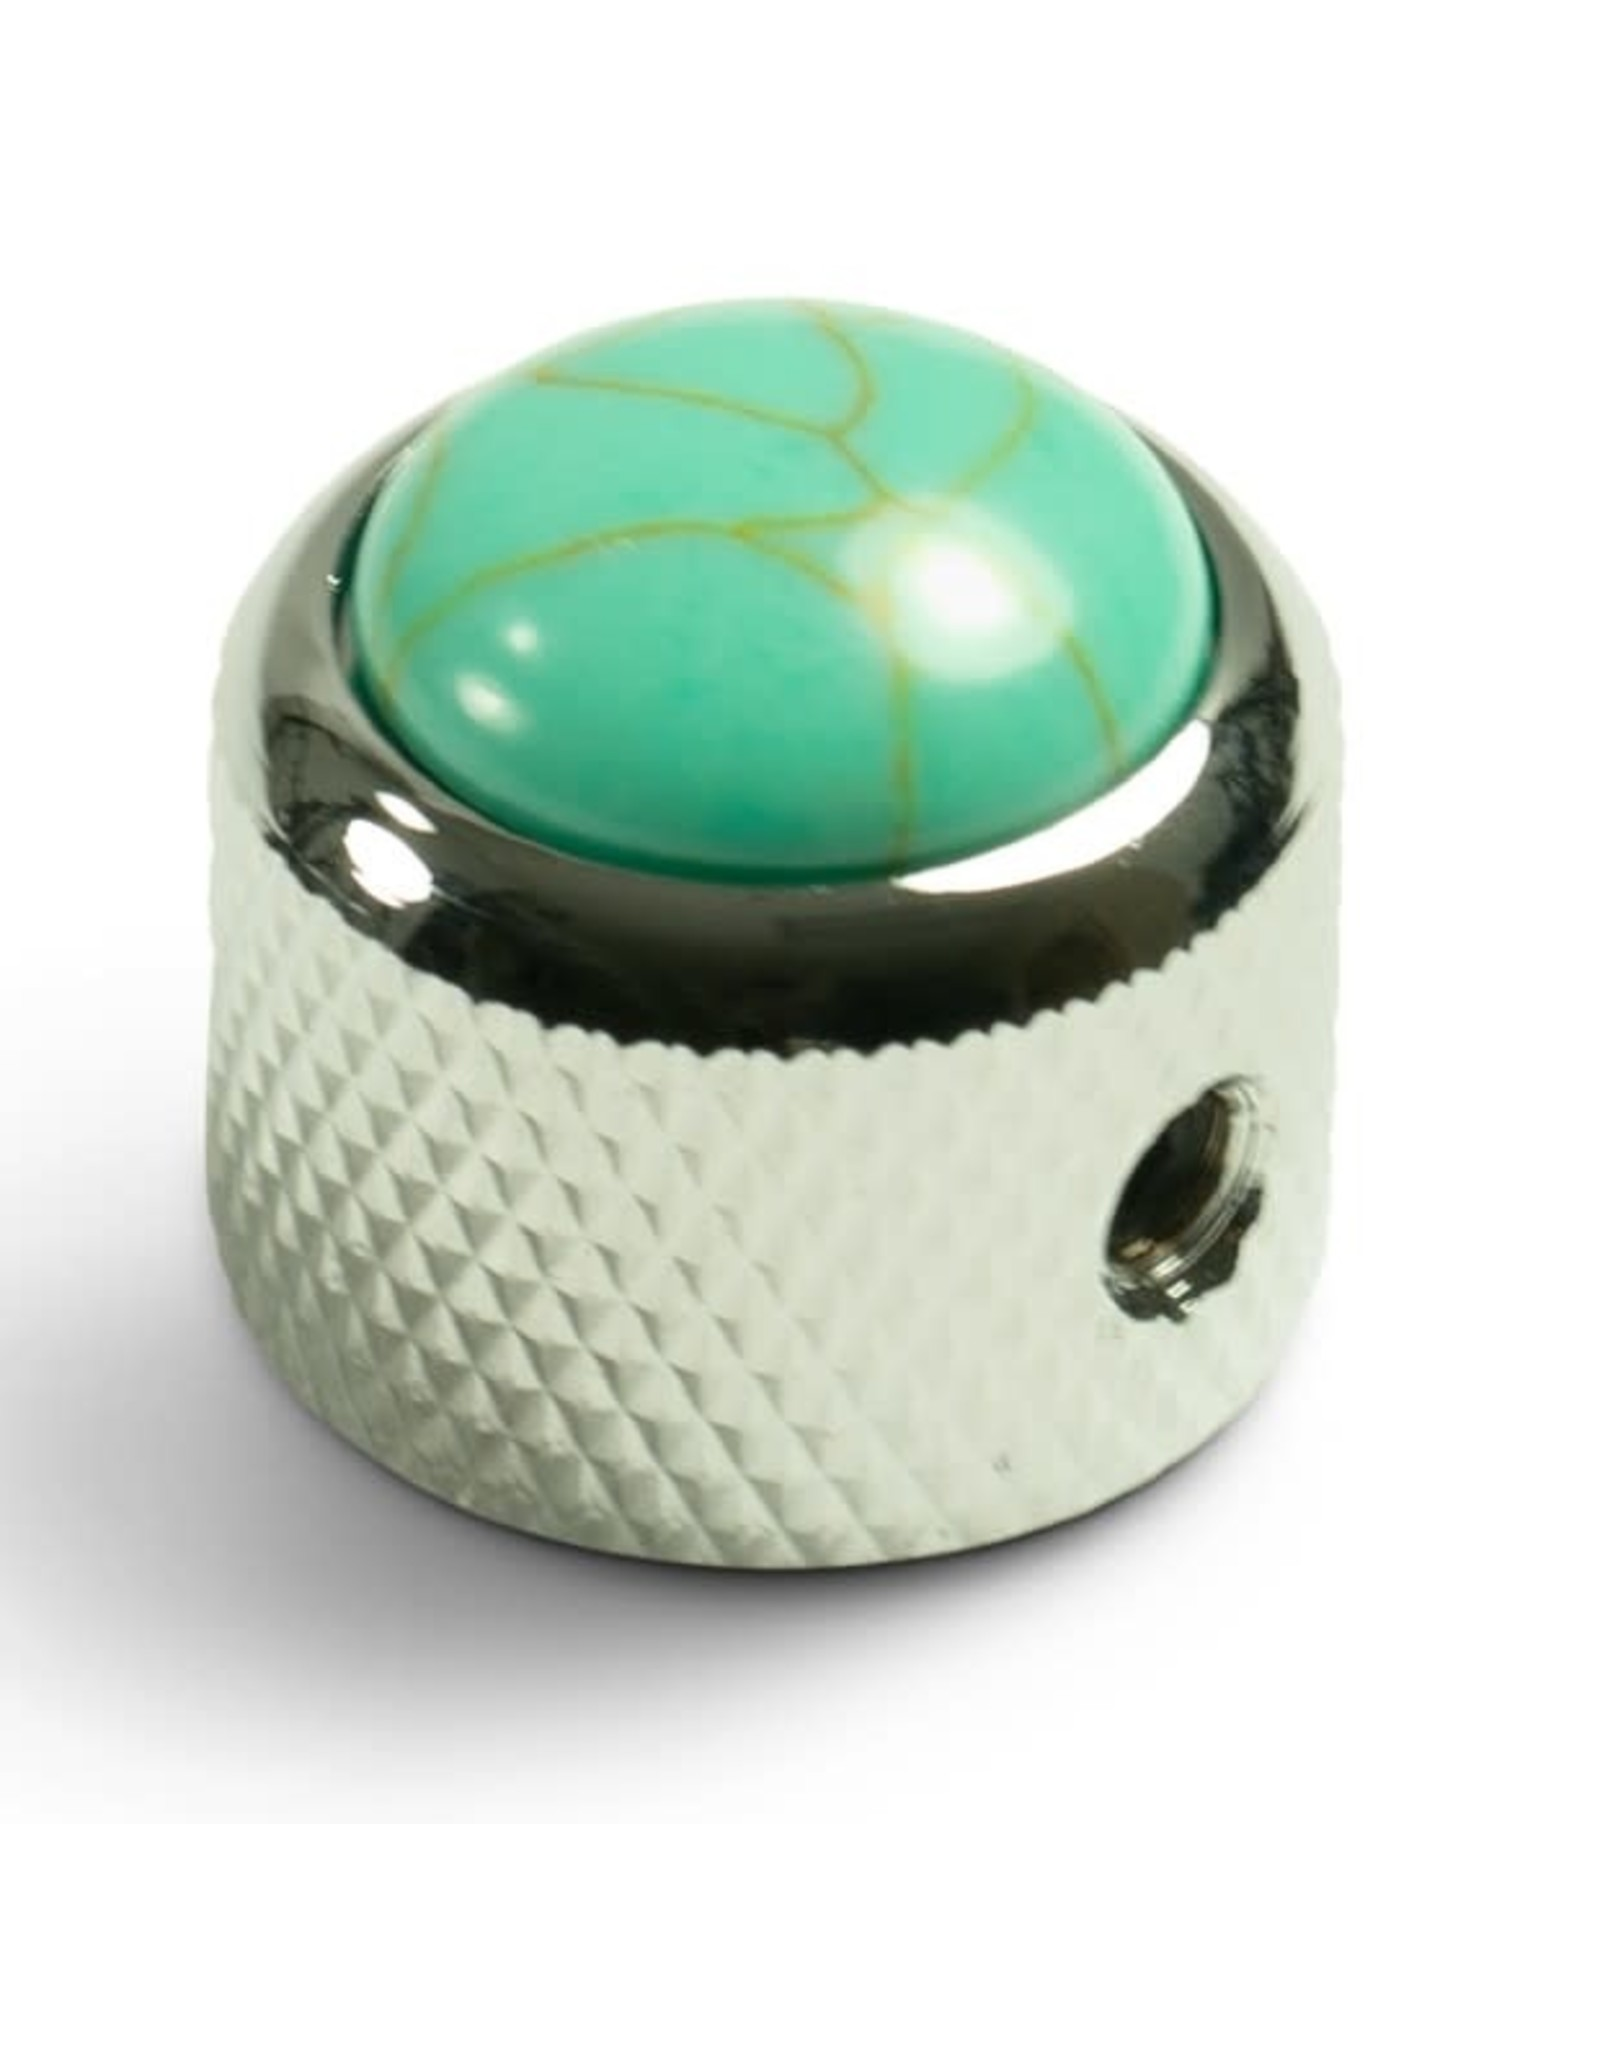 Q-Parts Q-Parts Knob With Turquoise Inlay Chrome